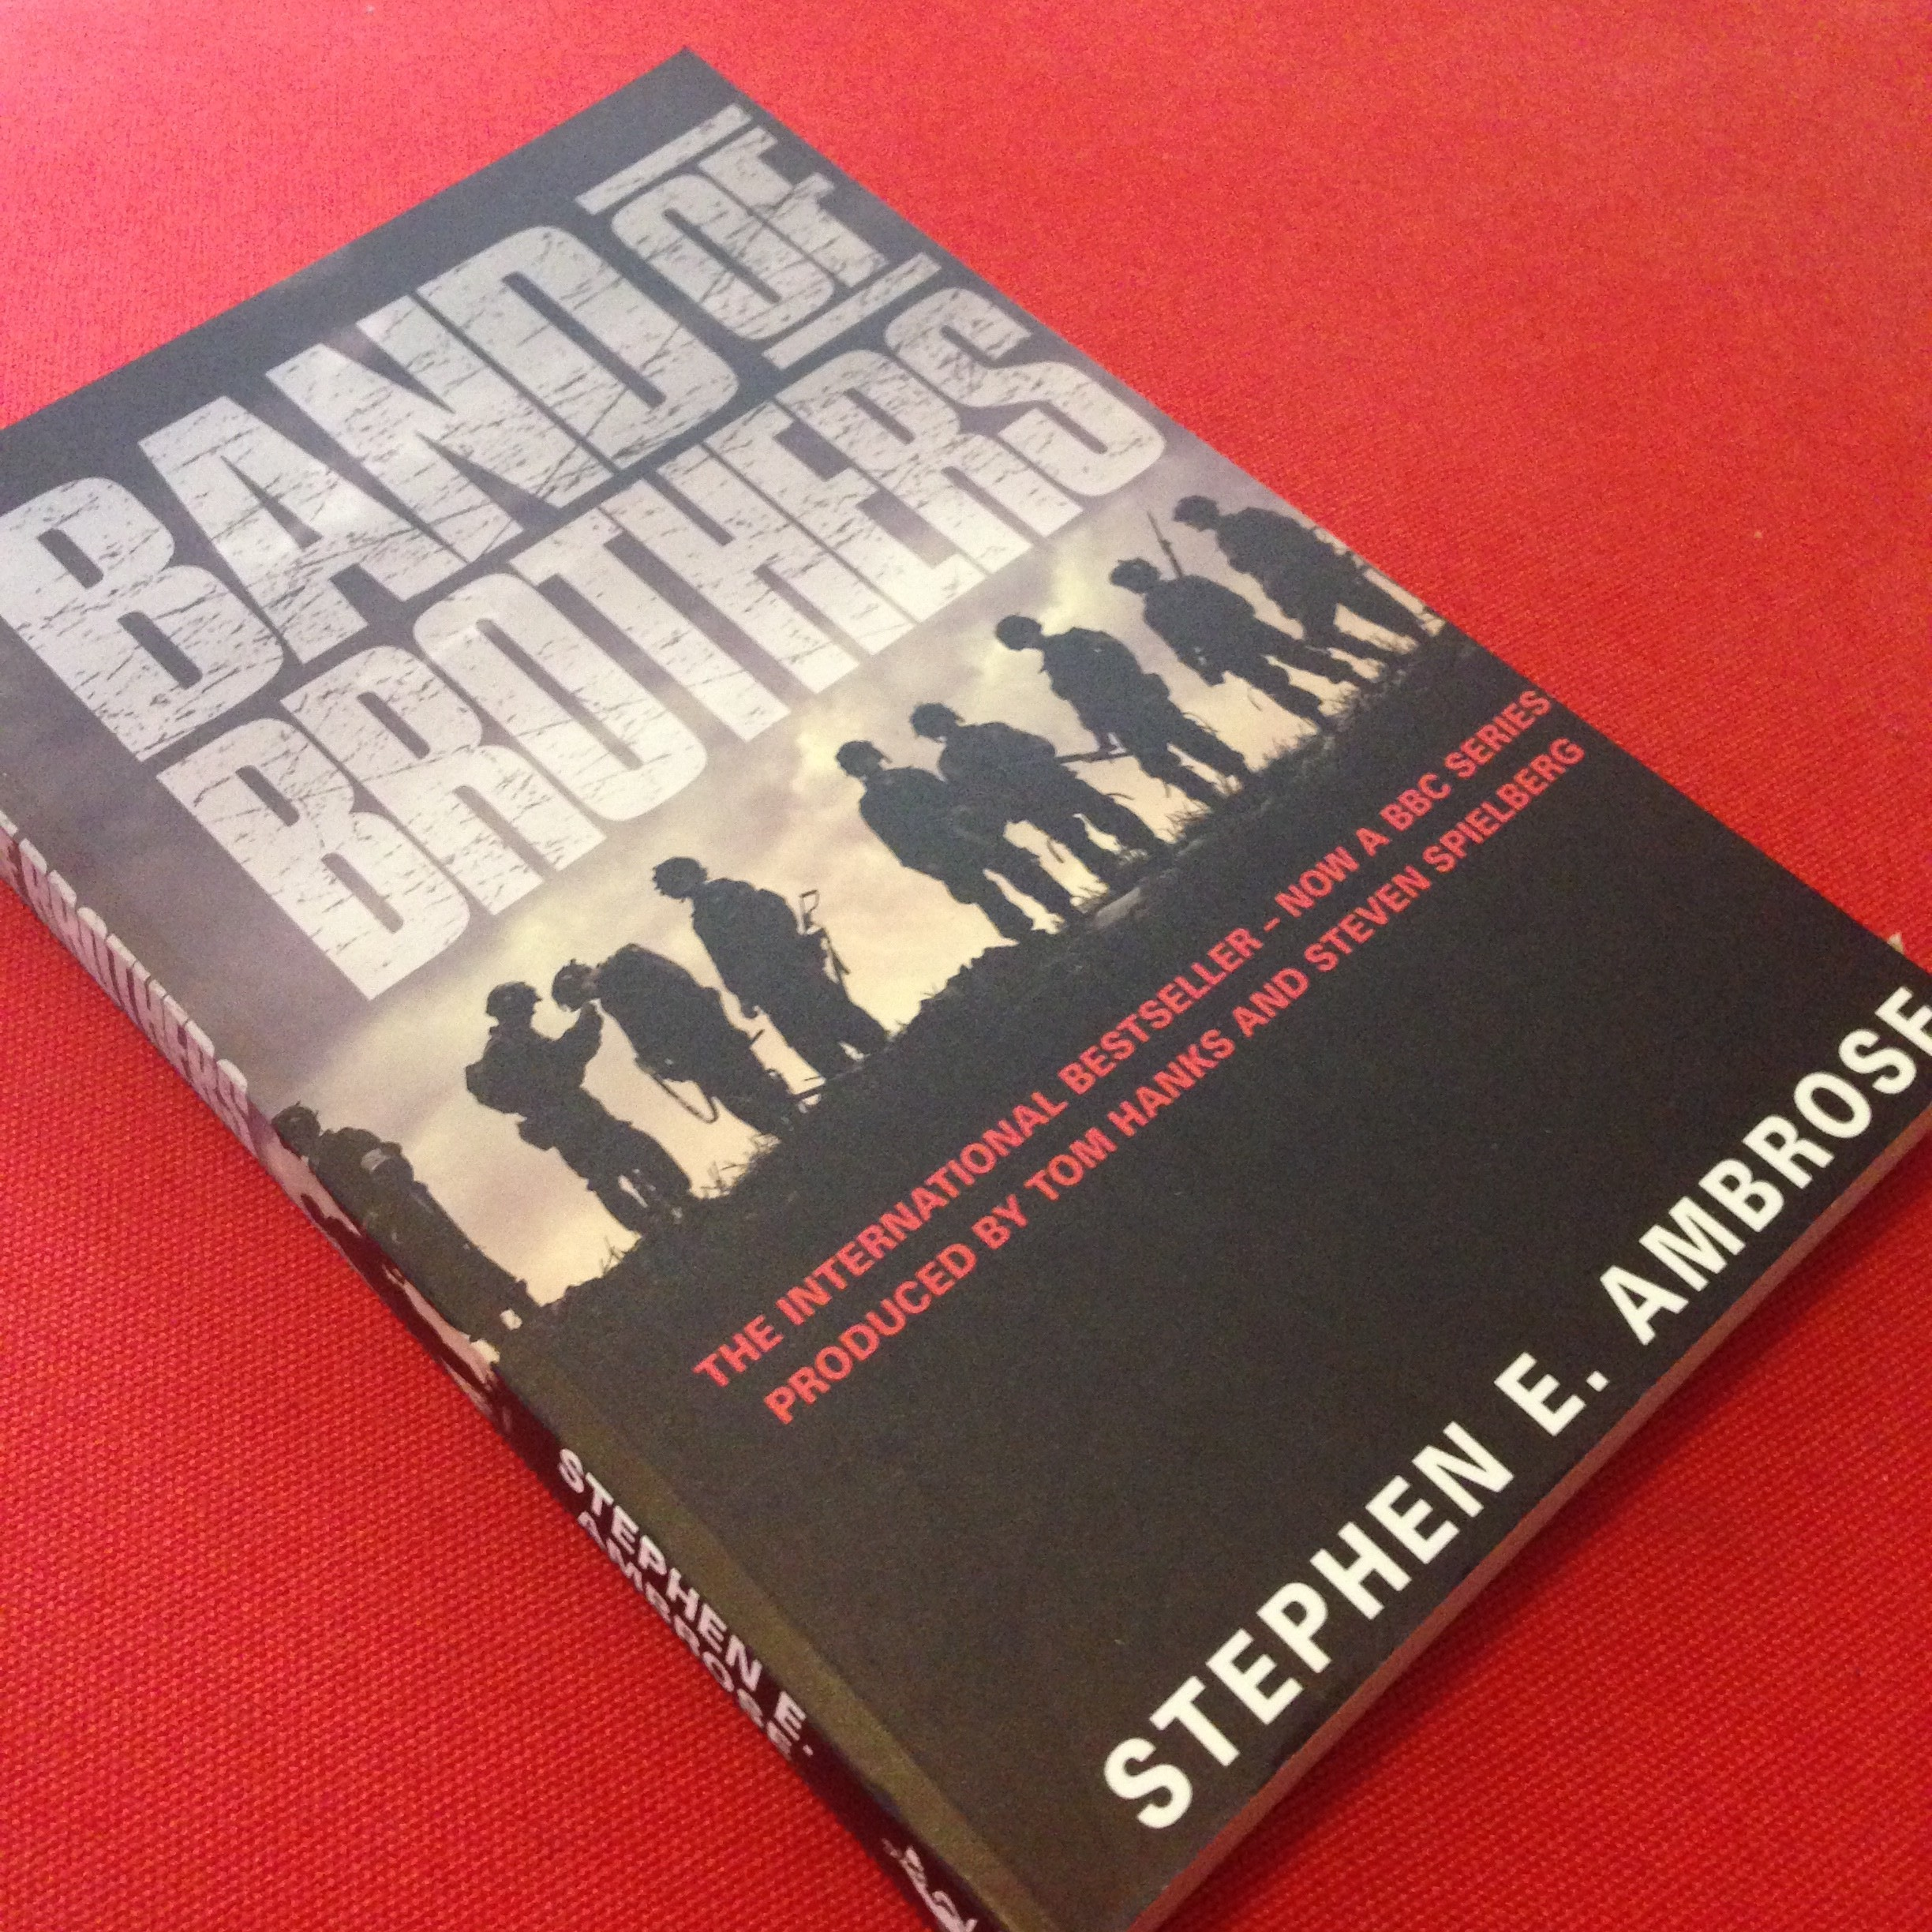 Forgot I owned: Band of Brothers and Tom-All-Alone's #bookaday